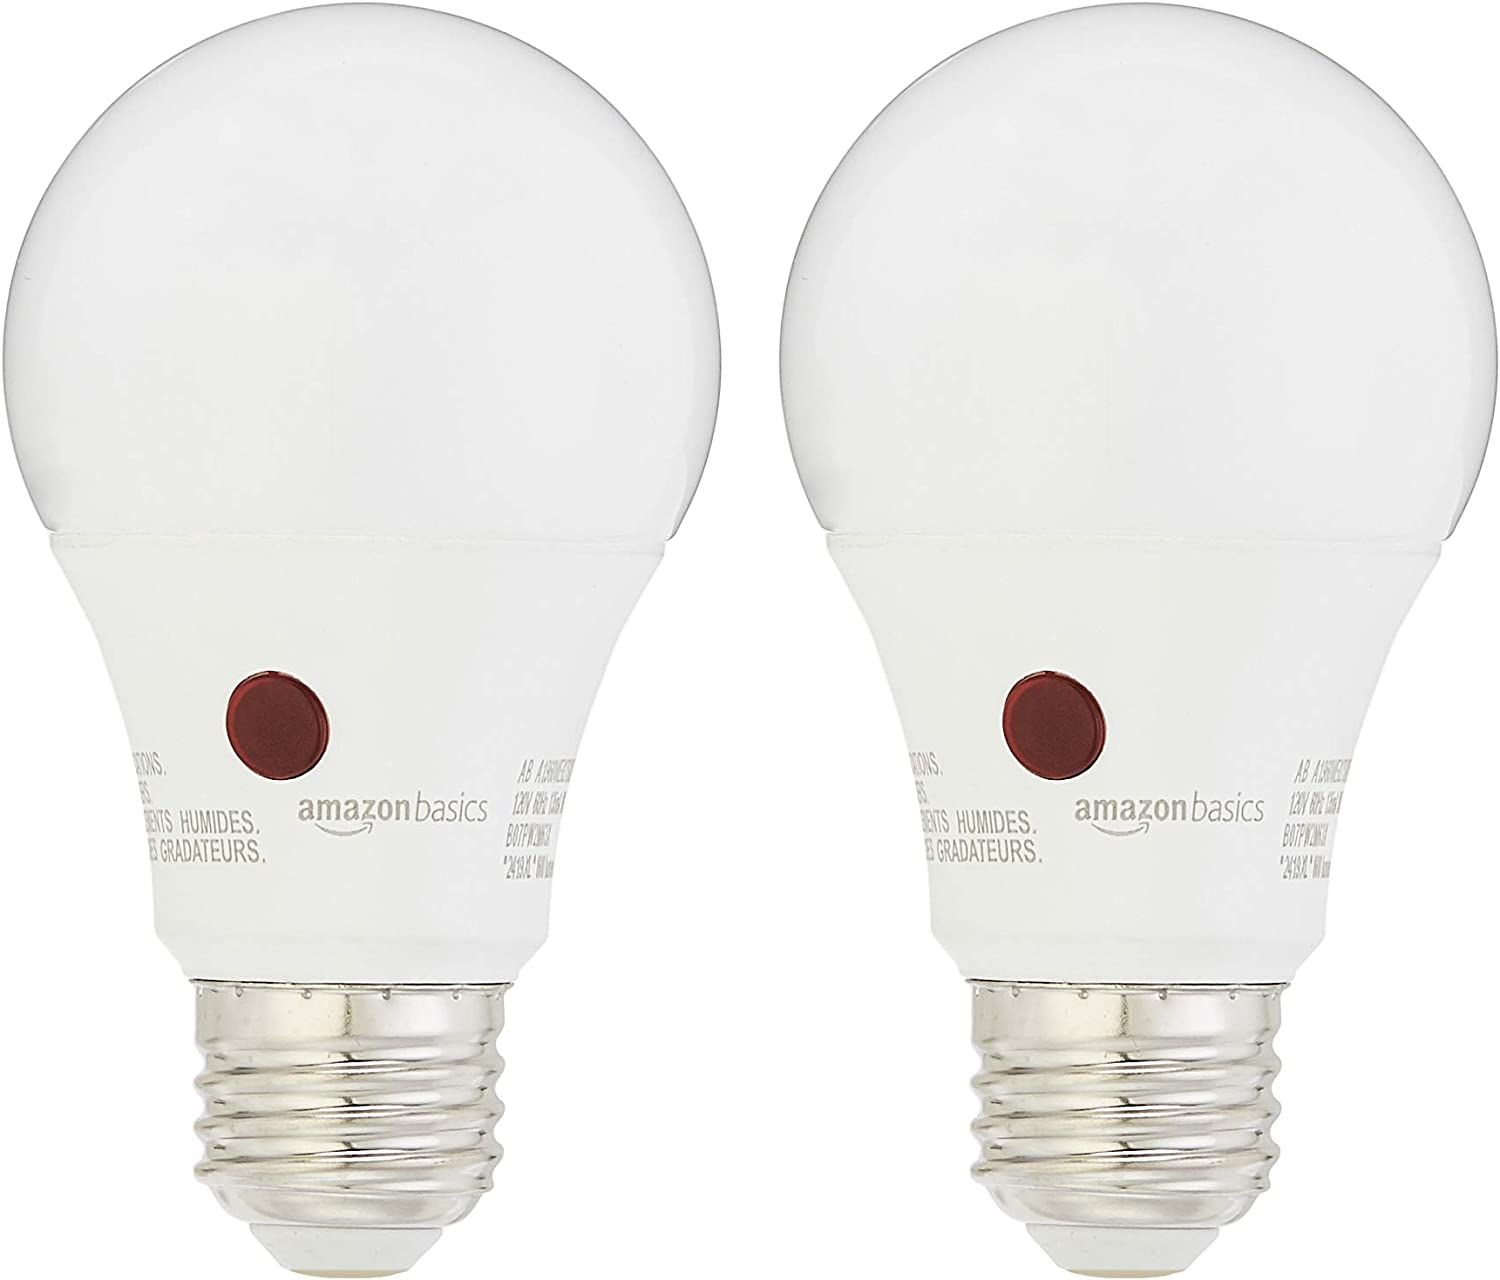 AmazonBasics 60 Watt Equivalent, Dusk to Dawn Sensor, Non-Dimmable, A19 LED Light Bulb | Soft White, 2-Pack